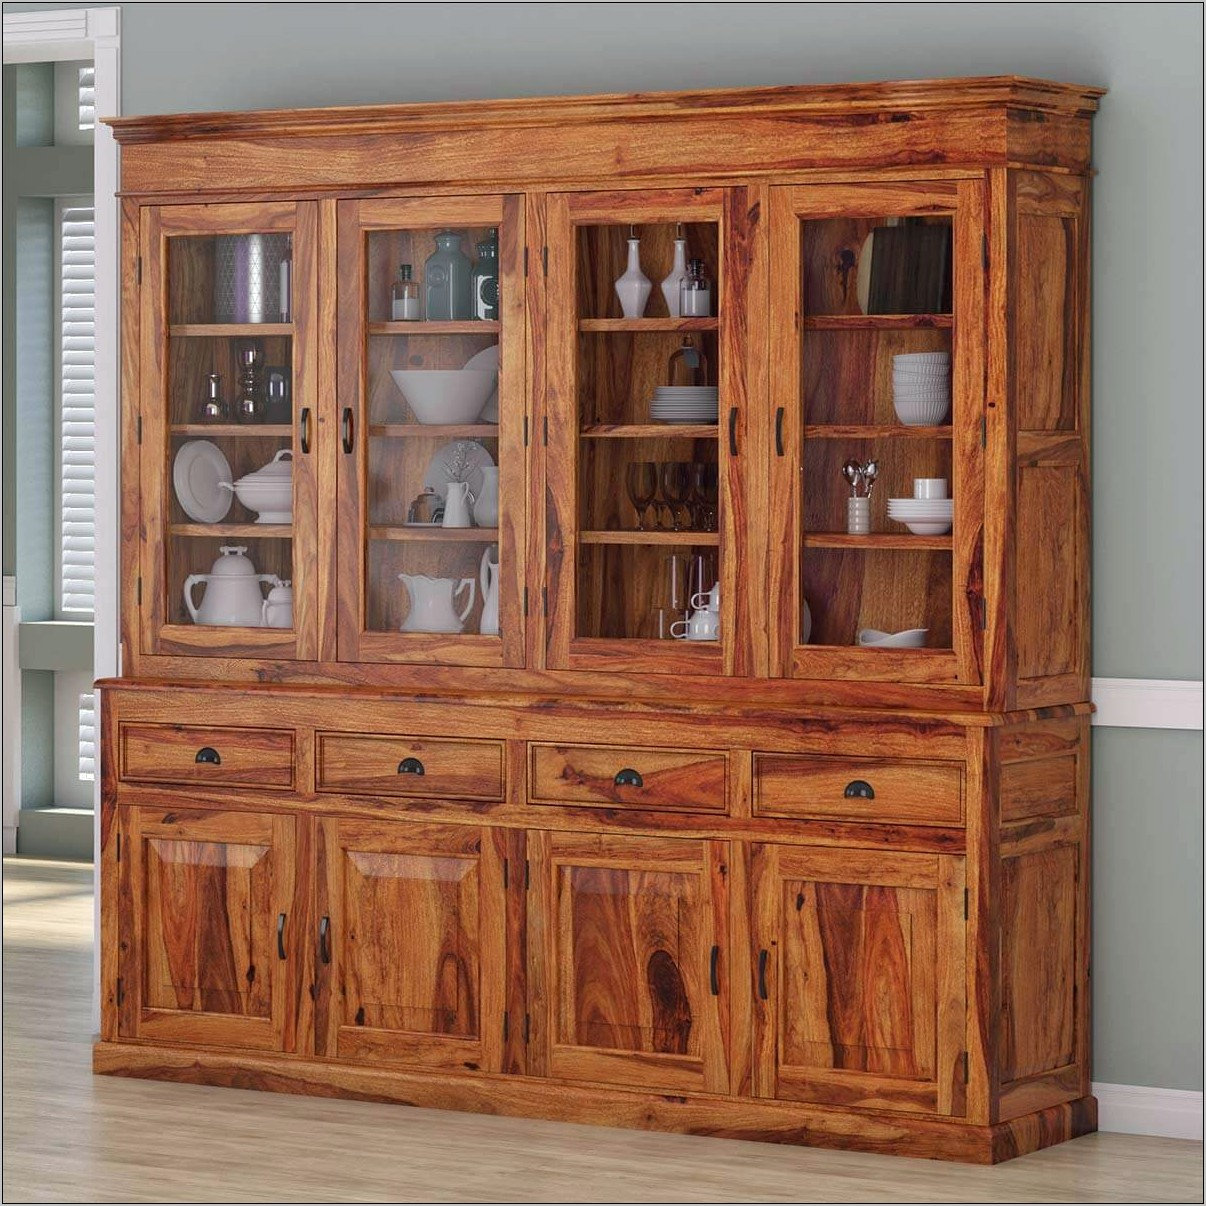 Large Dining Room Hutch Ideas